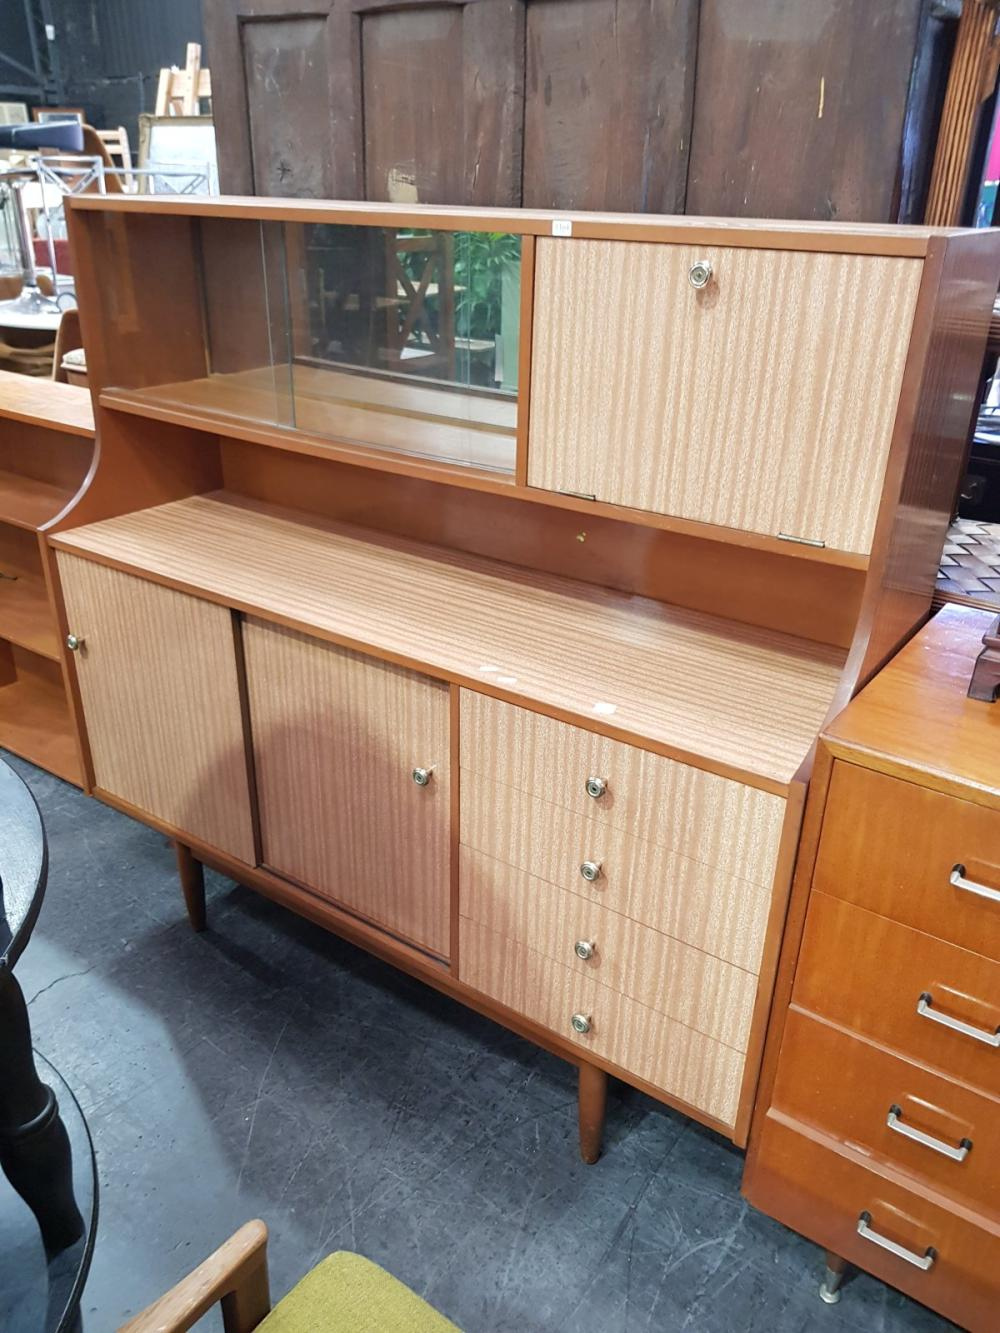 Retro Upright Sideboard